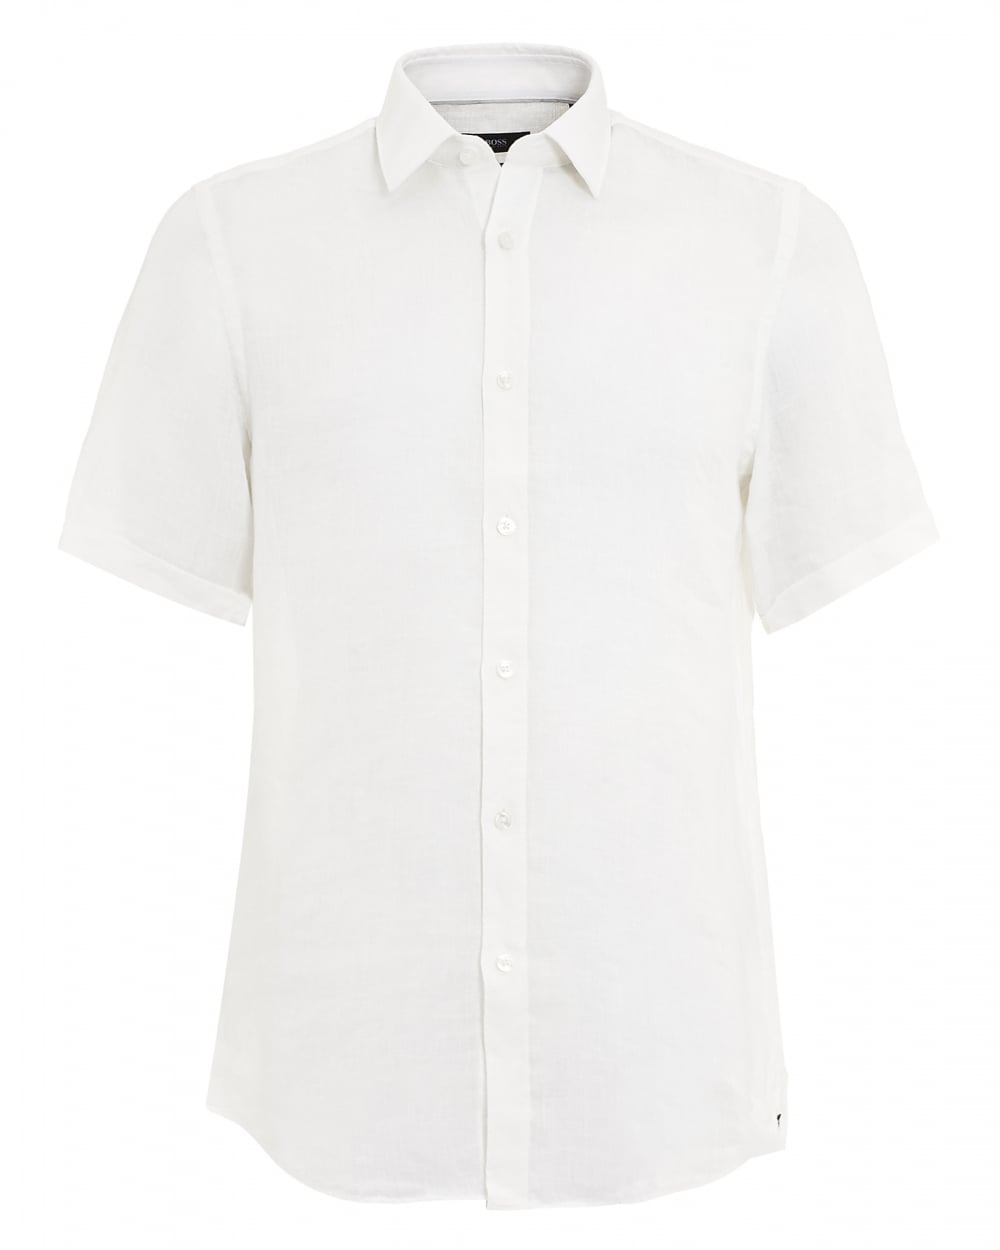 Mens Luka Linen White Short Sleeved Shirt